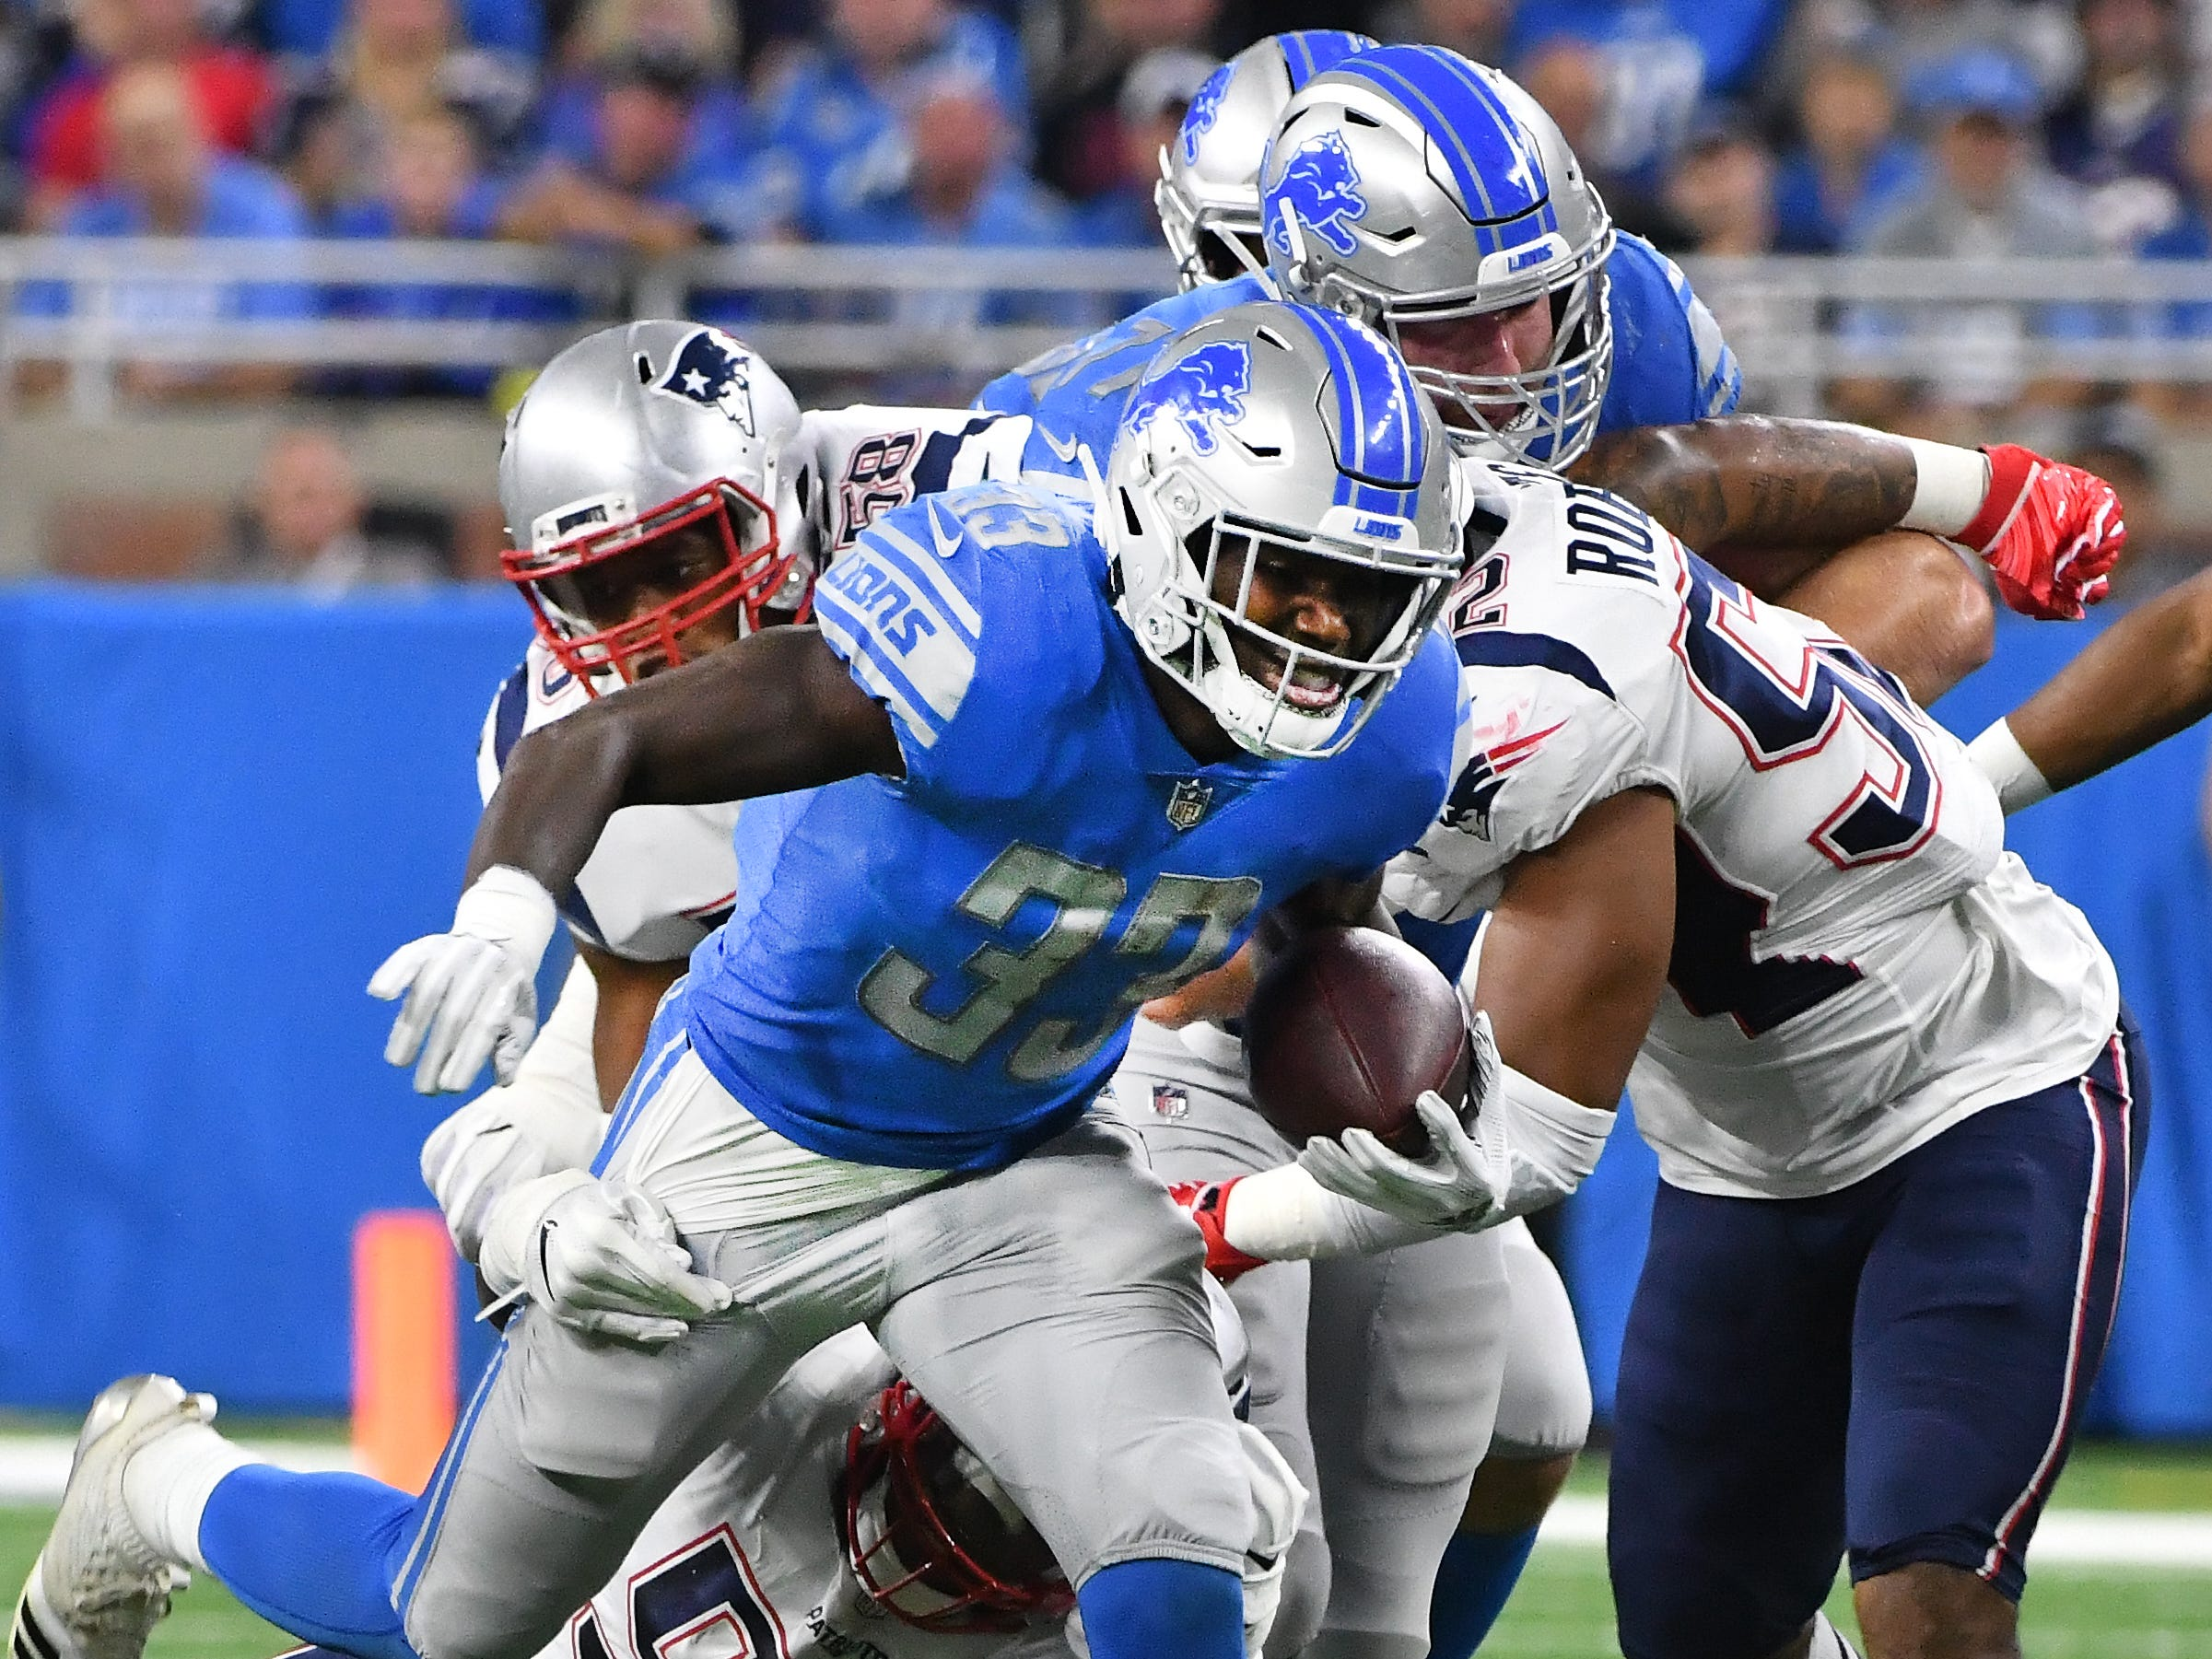 Lions running back Kerryon Johnson breaks up field for a first down run in the first quarter.